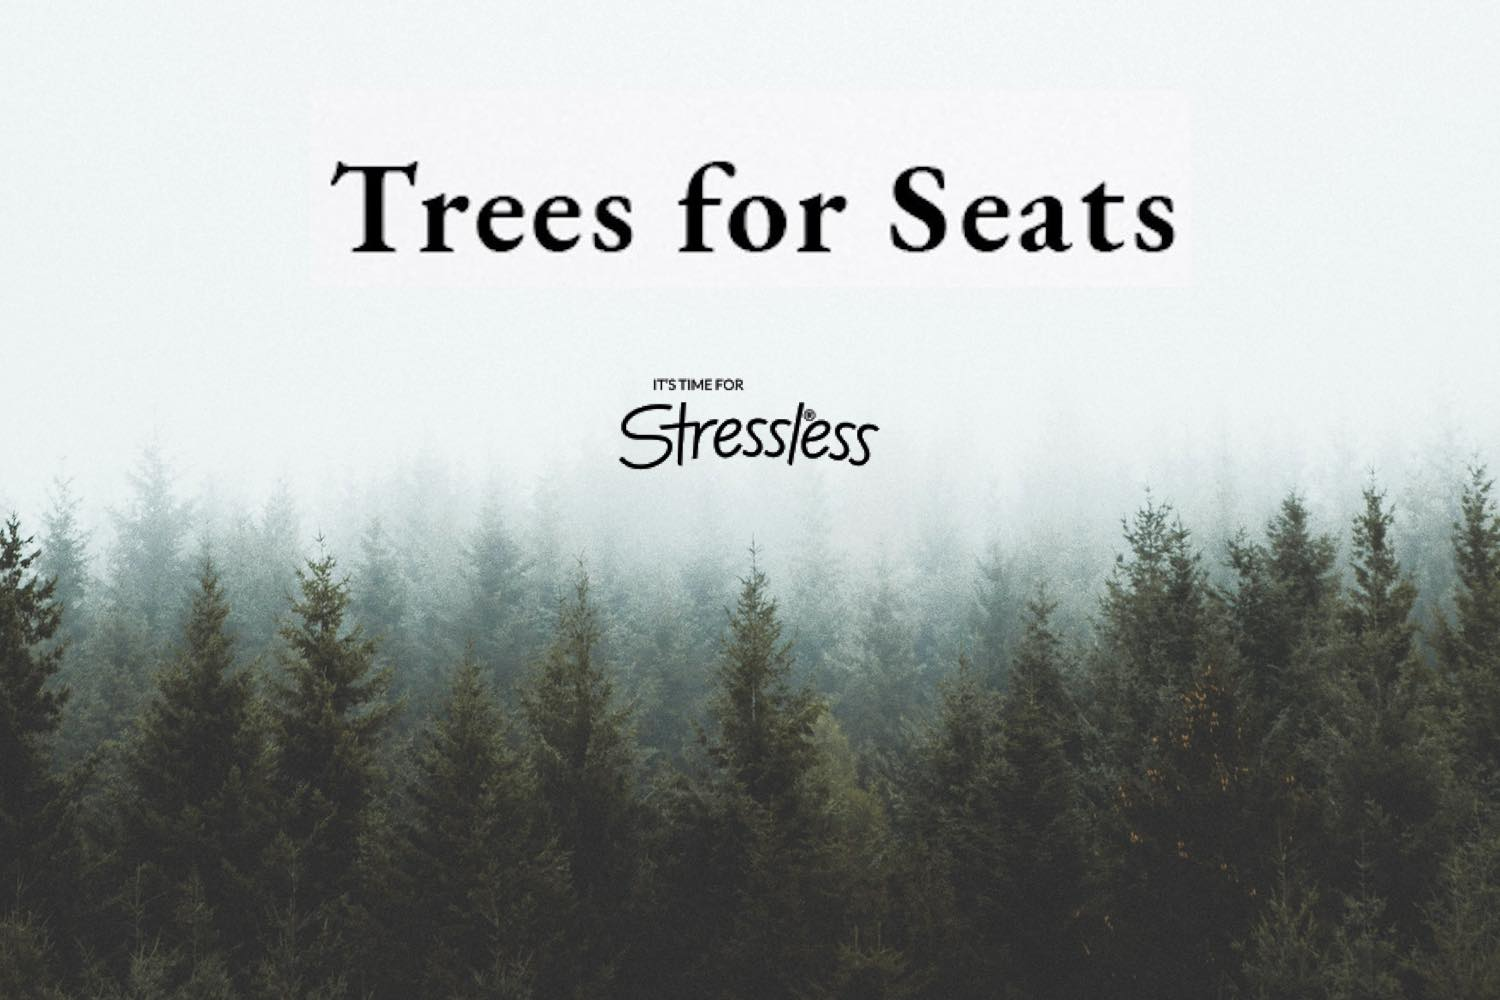 Stressless Trees for Seats